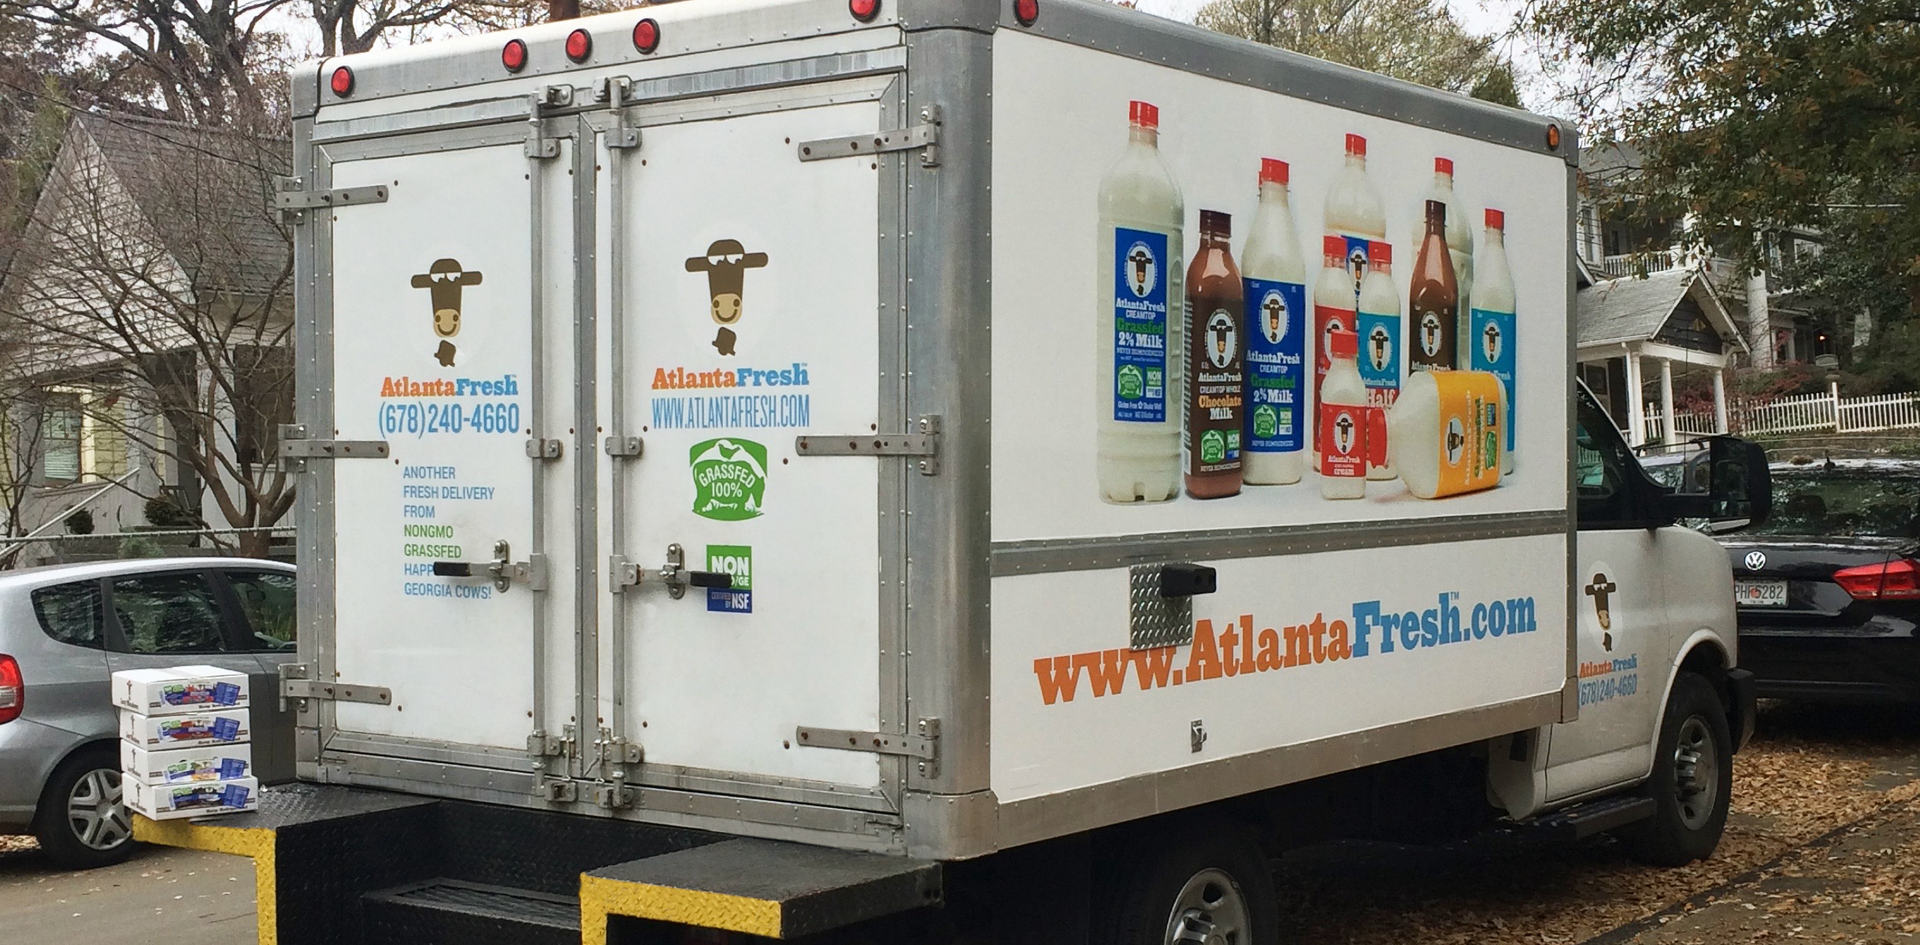 Vehicle Wraps are an underused ad medium. AtlantaFresh trucks were designed to advertise the established and familiar yogurt products on one side of the truck. And the new colorful milk line on the other. Back doors? Always put a company phone number. Atlanta's Traffic jams are the best advertising!